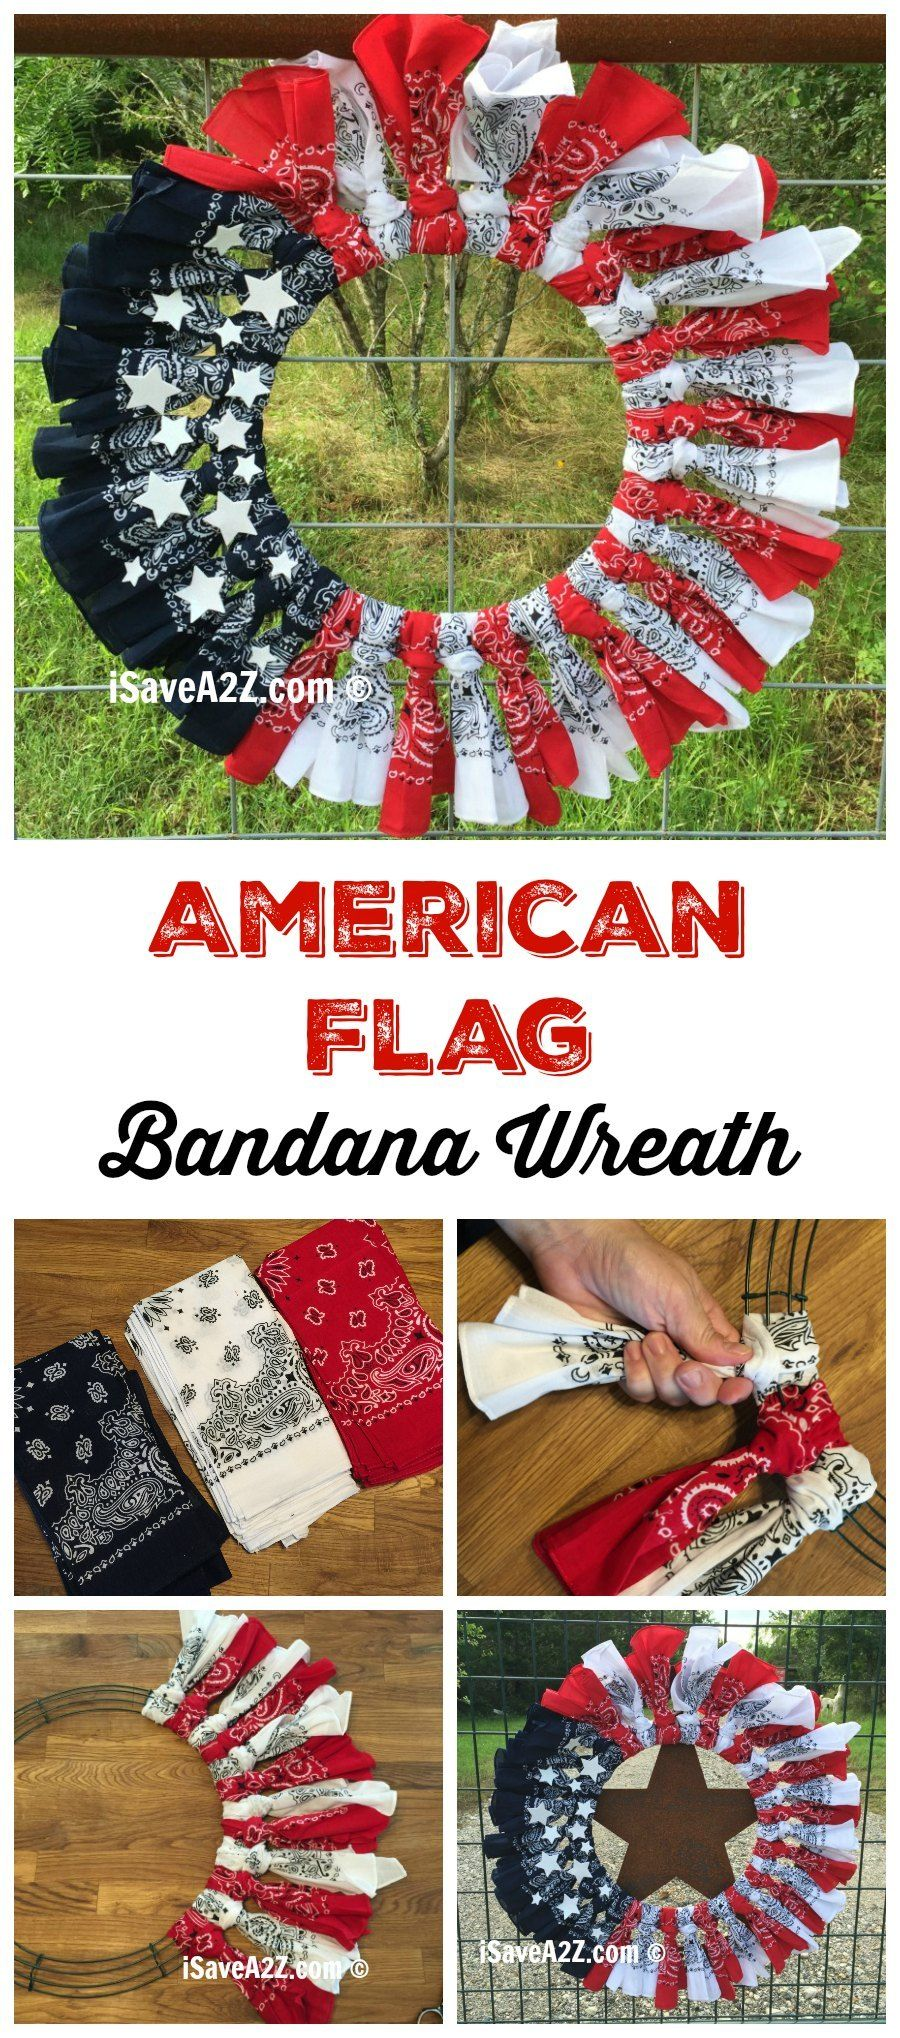 Over 35 Patriotic Themed Party Ideas, DIY Decorations, Crafts, Fun ...